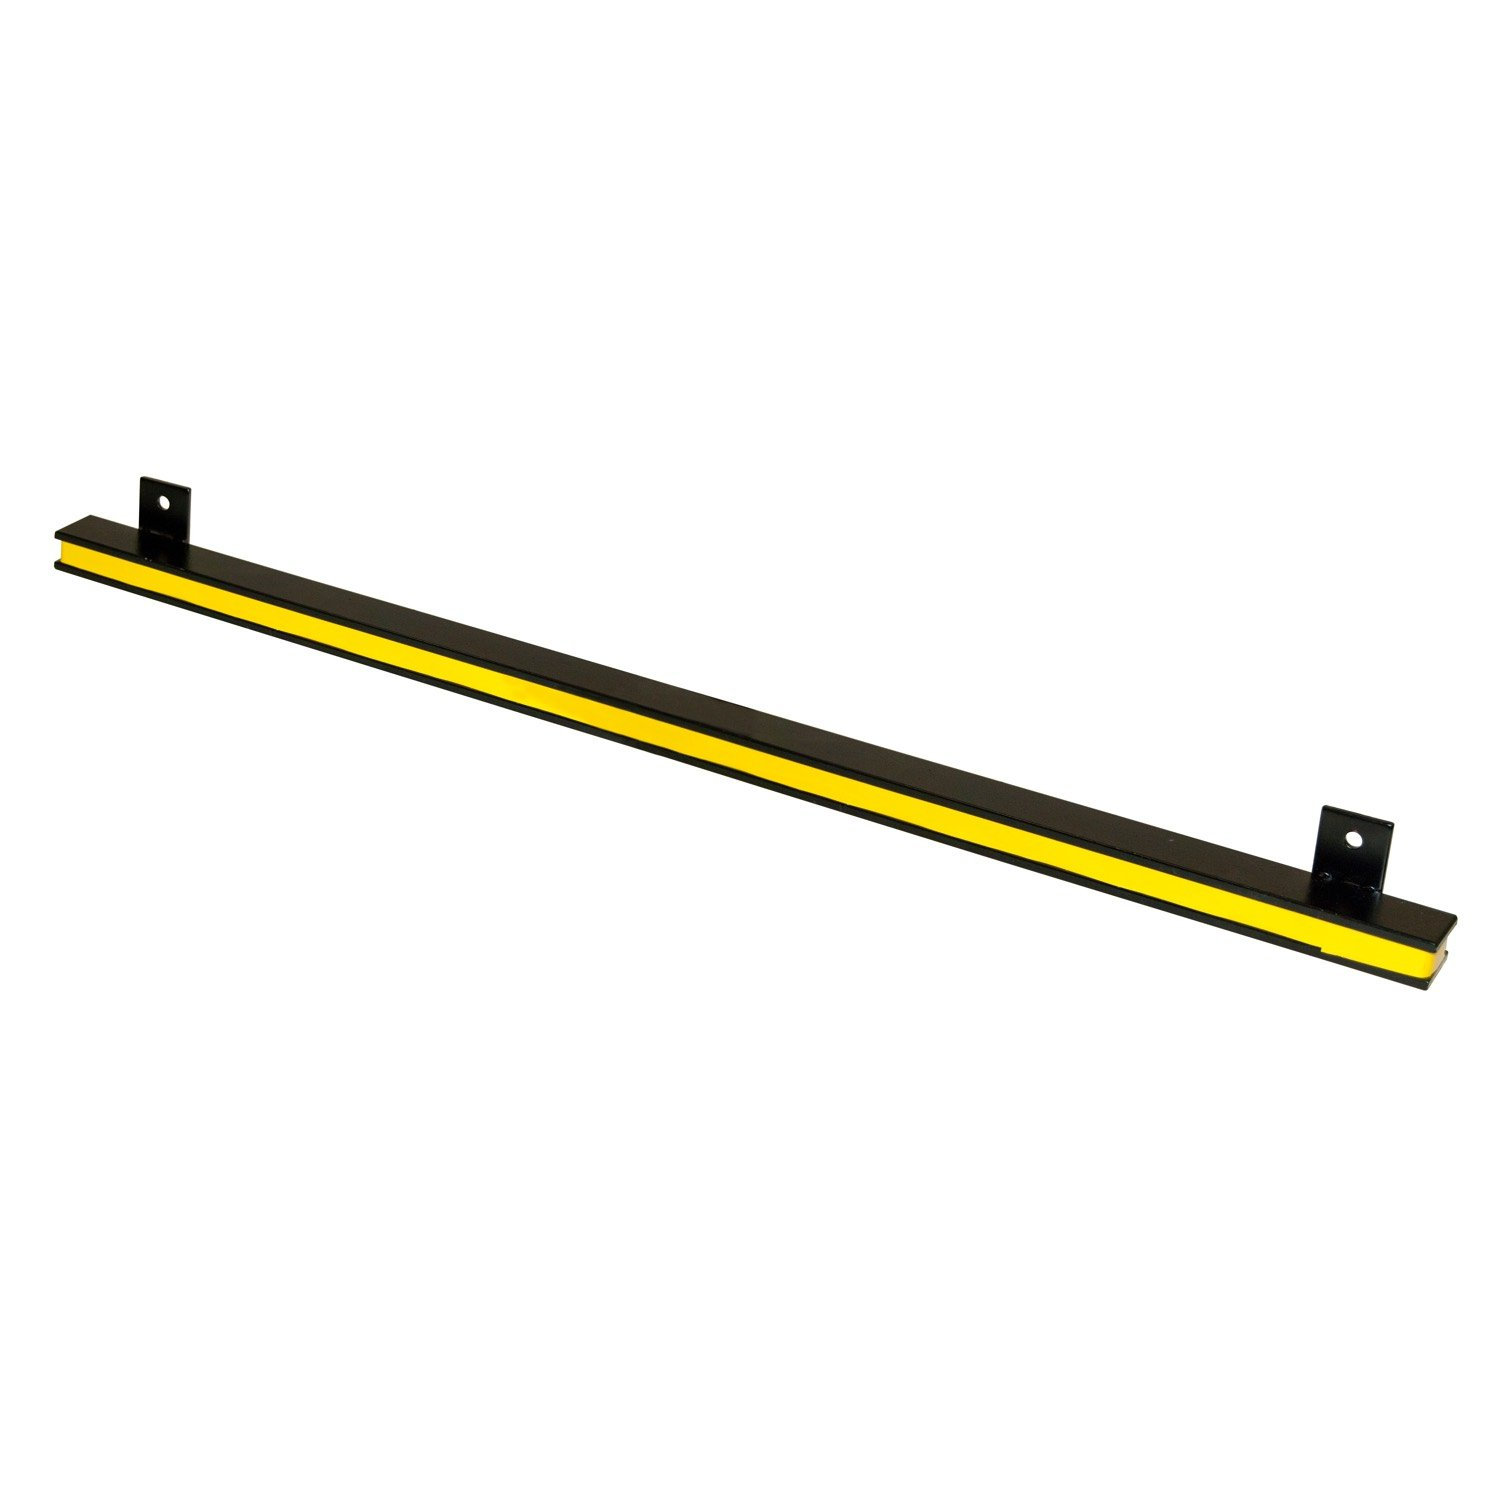 OEMTOOLS 24921 24 Inch Magnetic Tool Holder